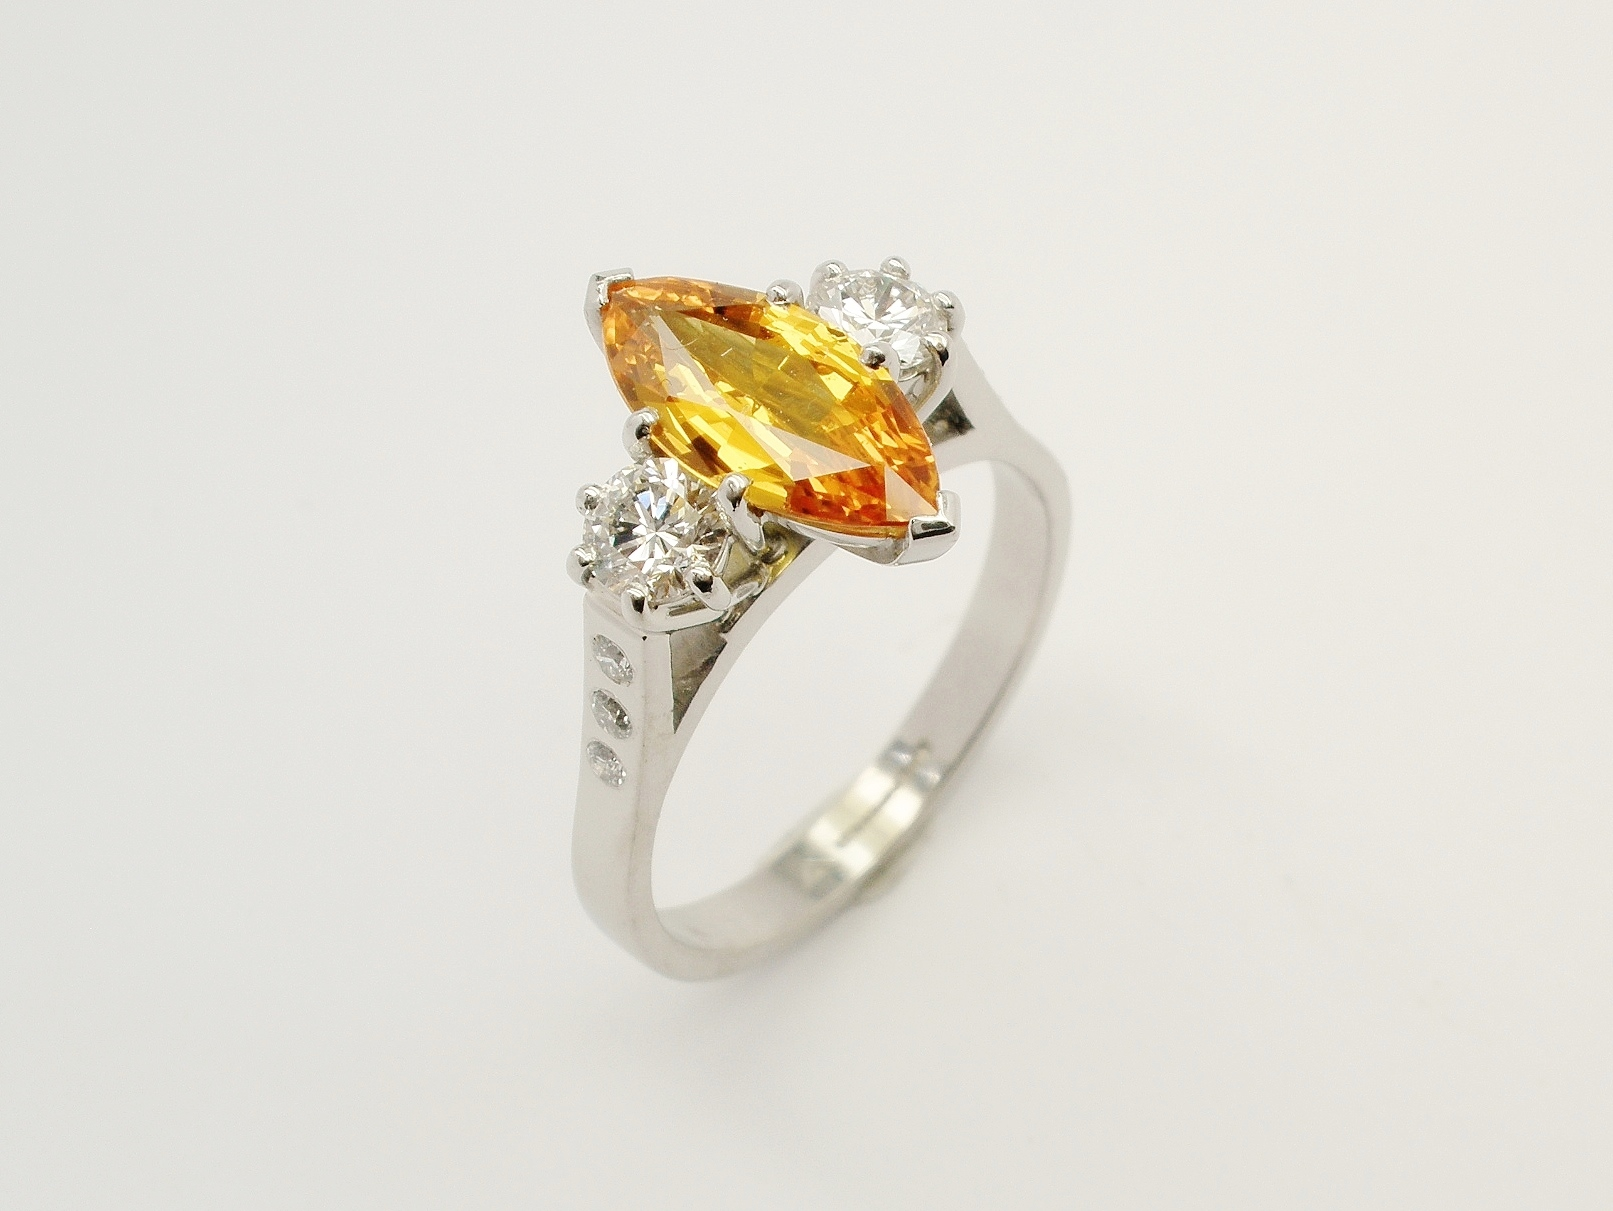 Orange marquise sapphire & round brilliant cut diamond 3 stone ring, mounted in platinum & palladium with diamond set shoulders.